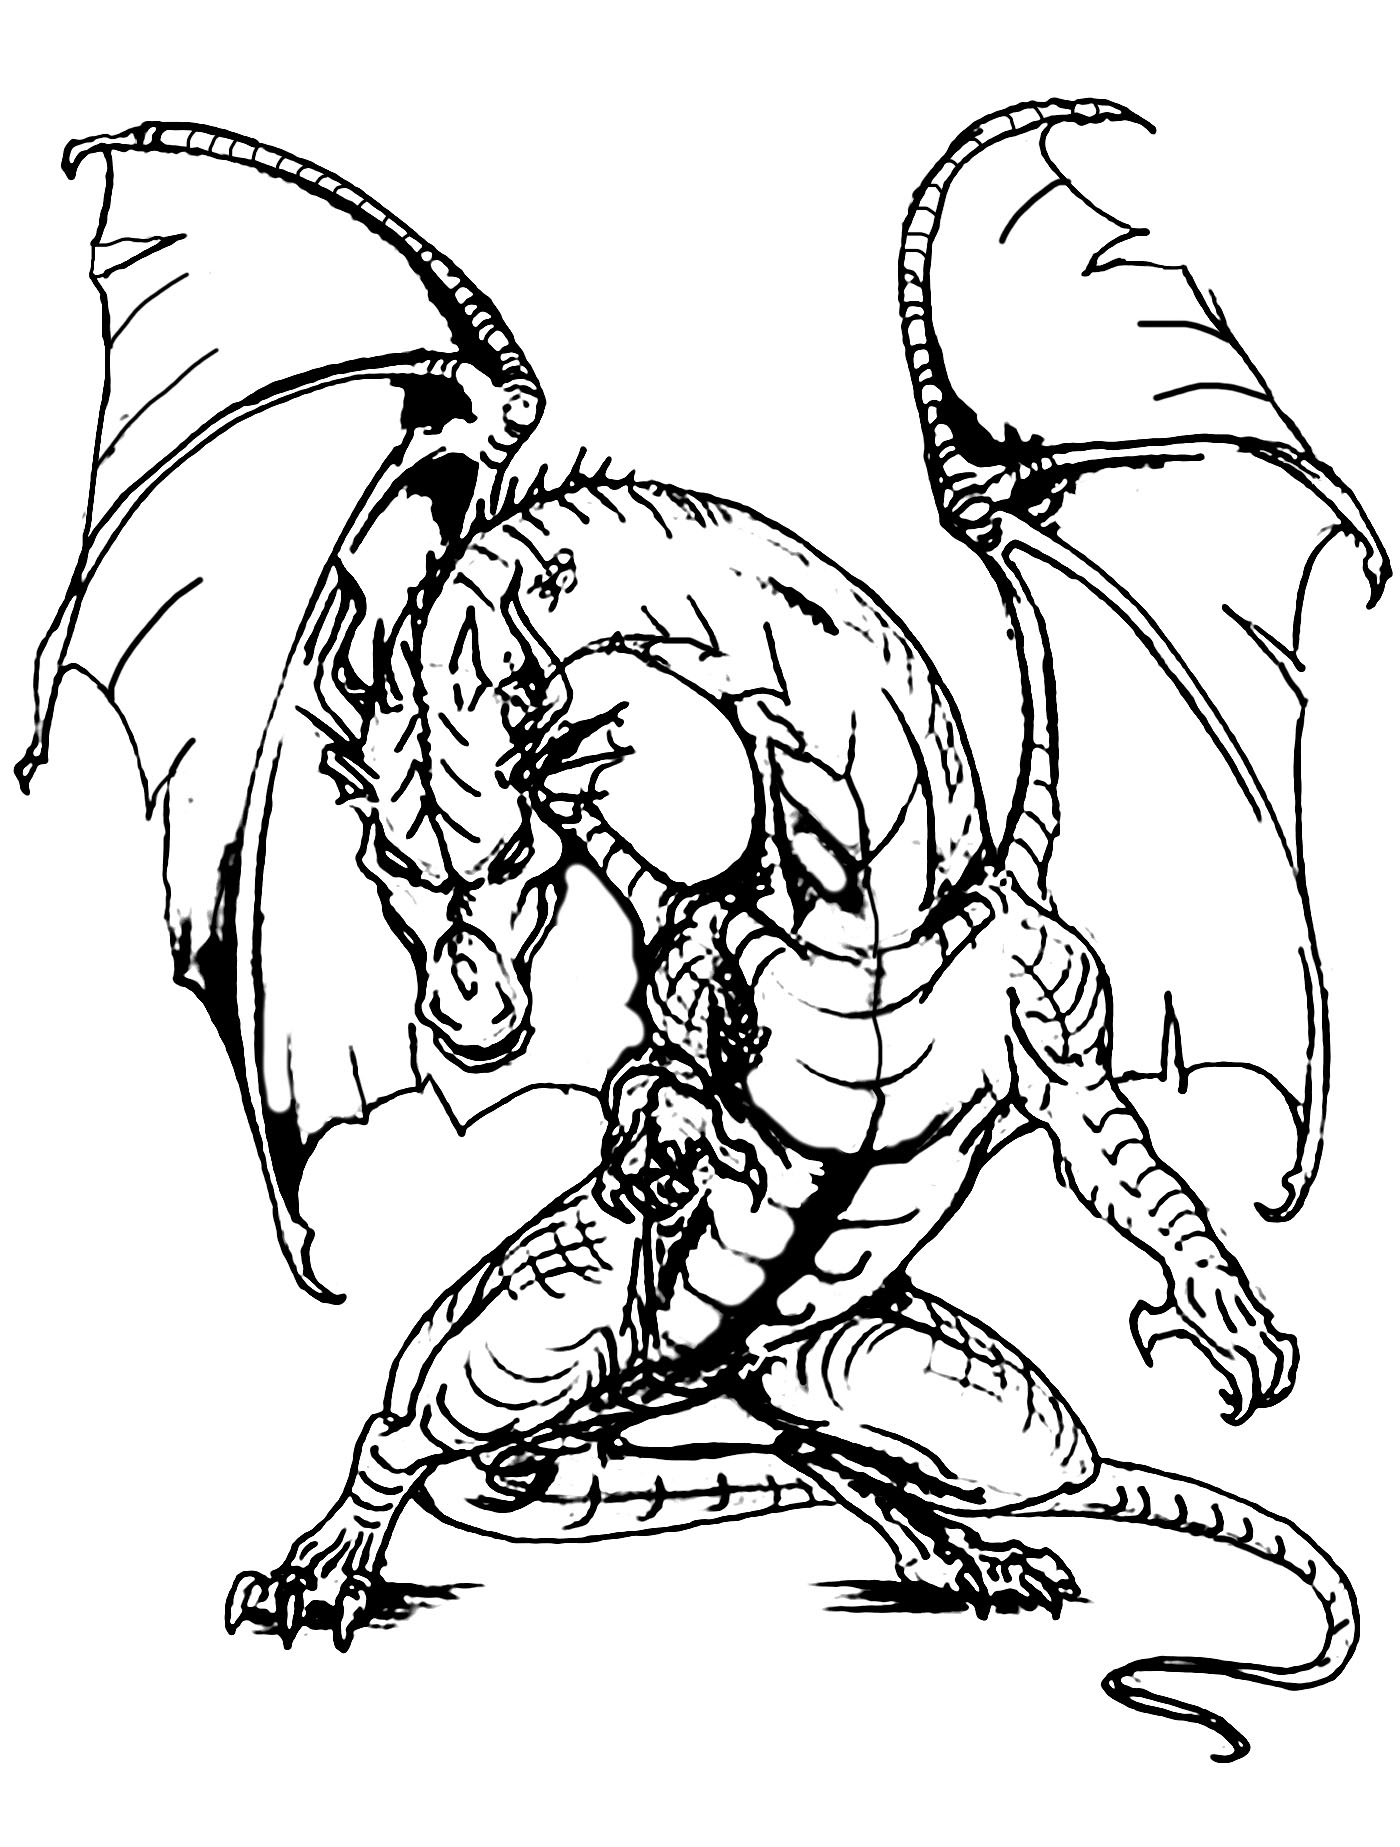 dragon coloring pages hard adults difficult dragons coloring pages printable coloring hard pages dragon